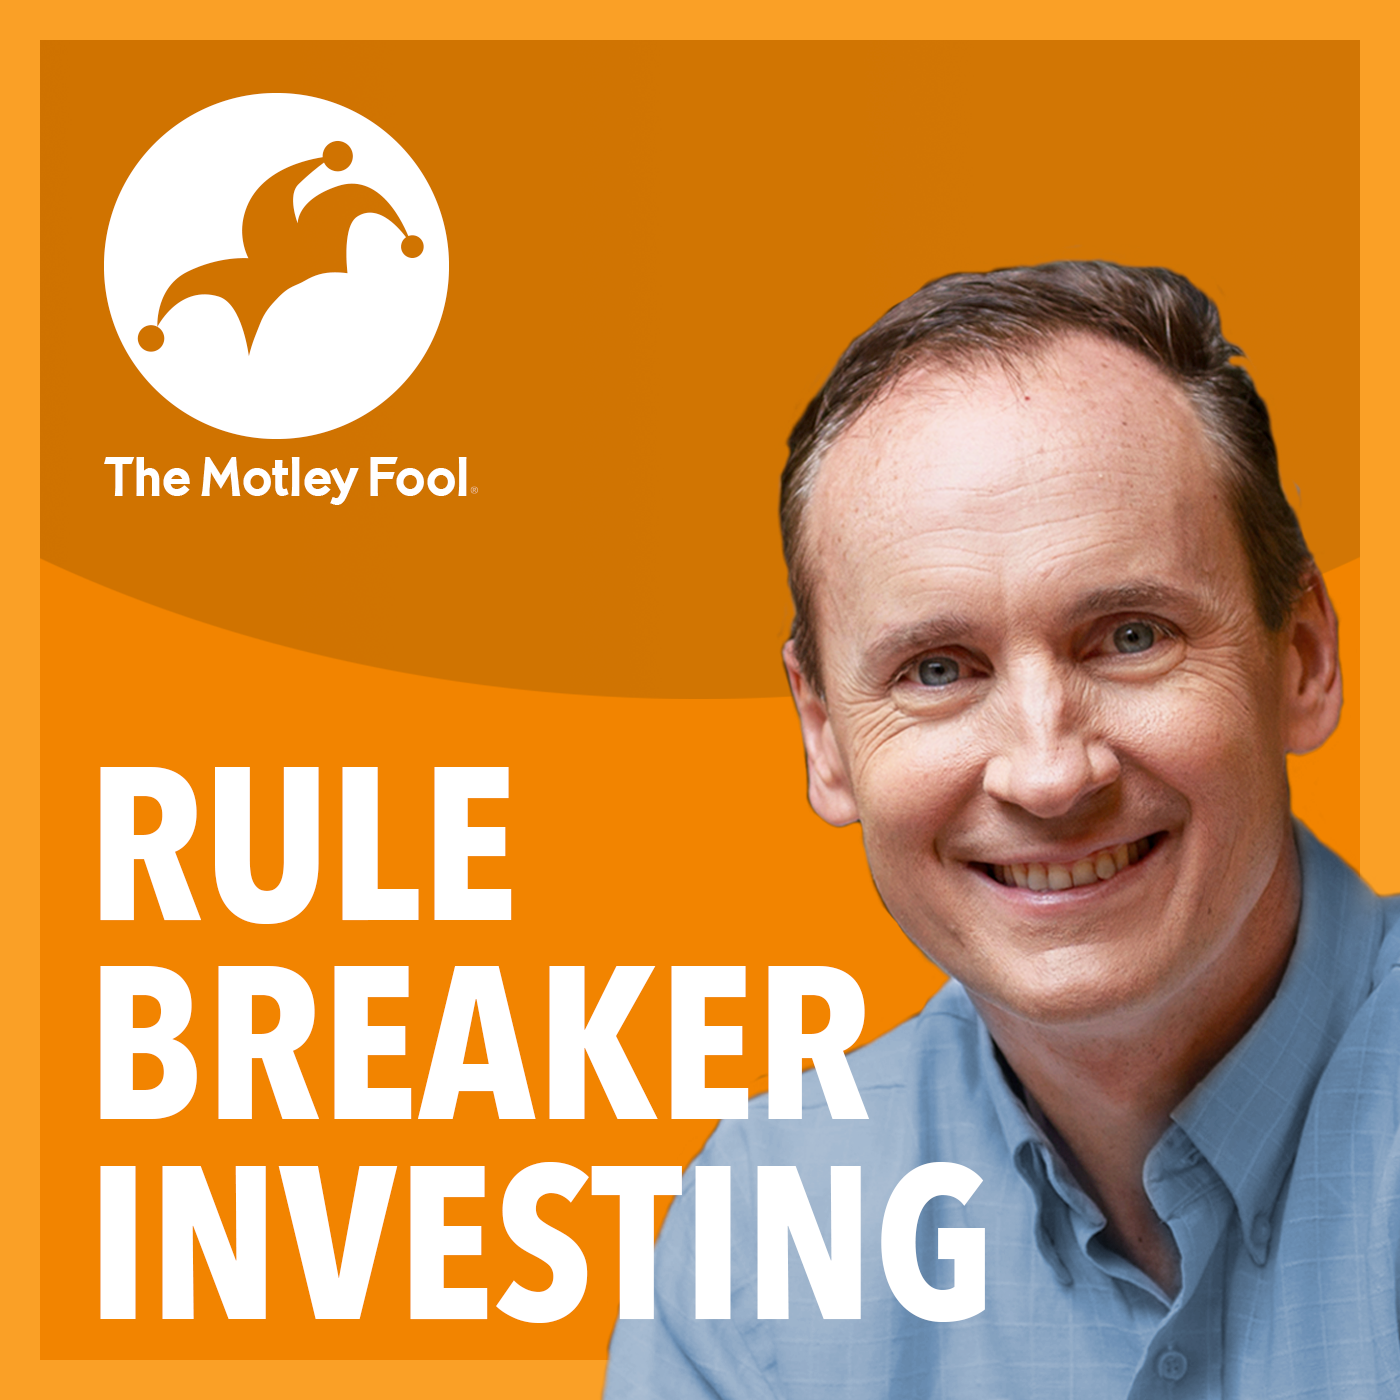 Blast From The Past, Vol. 5 - Rule Breaker Investing